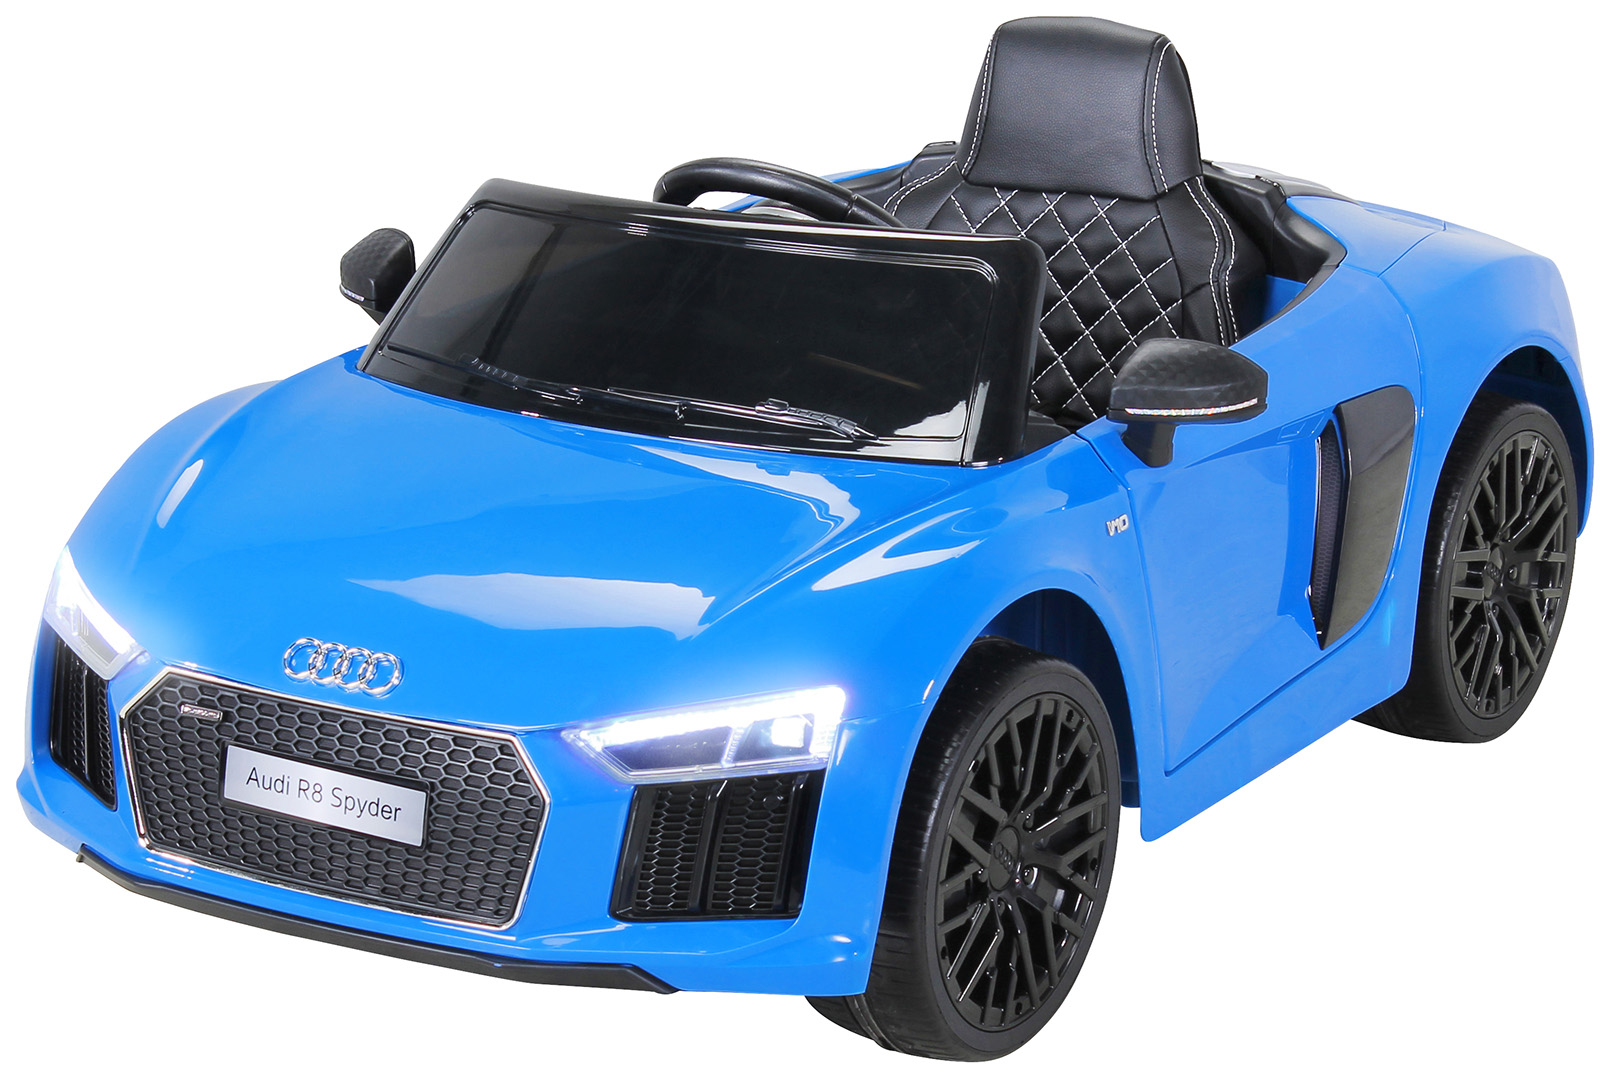 kinder elektroauto audi r8 spyder lizenziert miweba gmbh. Black Bedroom Furniture Sets. Home Design Ideas